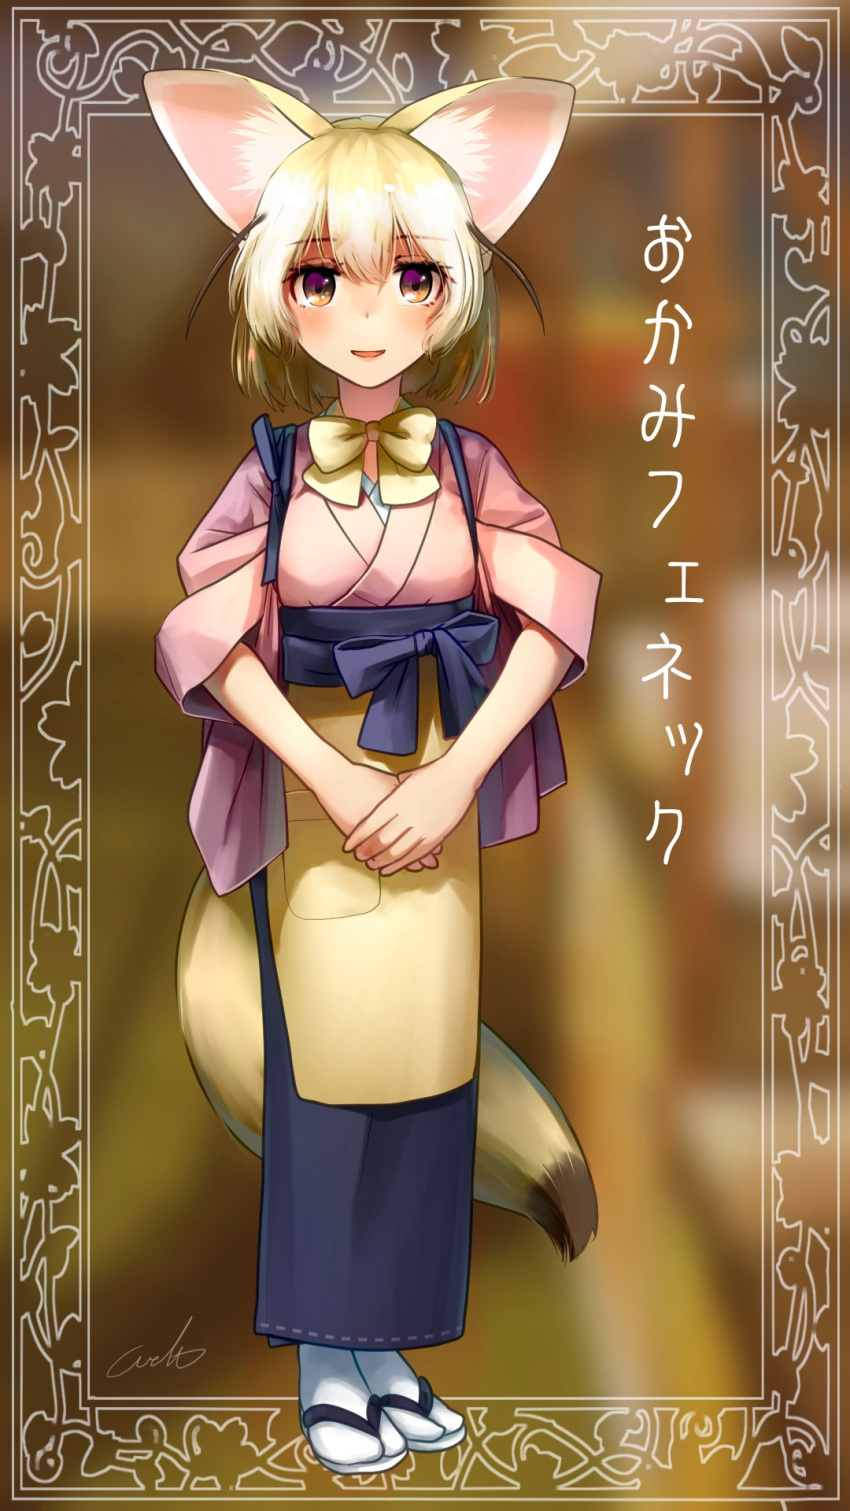 1girl alternate_costume animal_ear_fluff animal_ears apron blonde_hair bow bowtie brown_eyes character_name commentary eyebrows_visible_through_hair eyes_visible_through_hair fennec_(kemono_friends) fox_ears fox_girl fox_tail frame full_body hair_between_eyes highres japanese_clothes kemono_friends legs_together looking_at_viewer medium_hair outside_border parted_lips pocket signature smile solo standing tabi tail tasuki translated waist_apron welt_(kinsei_koutenkyoku) yellow_apron yellow_neckwear